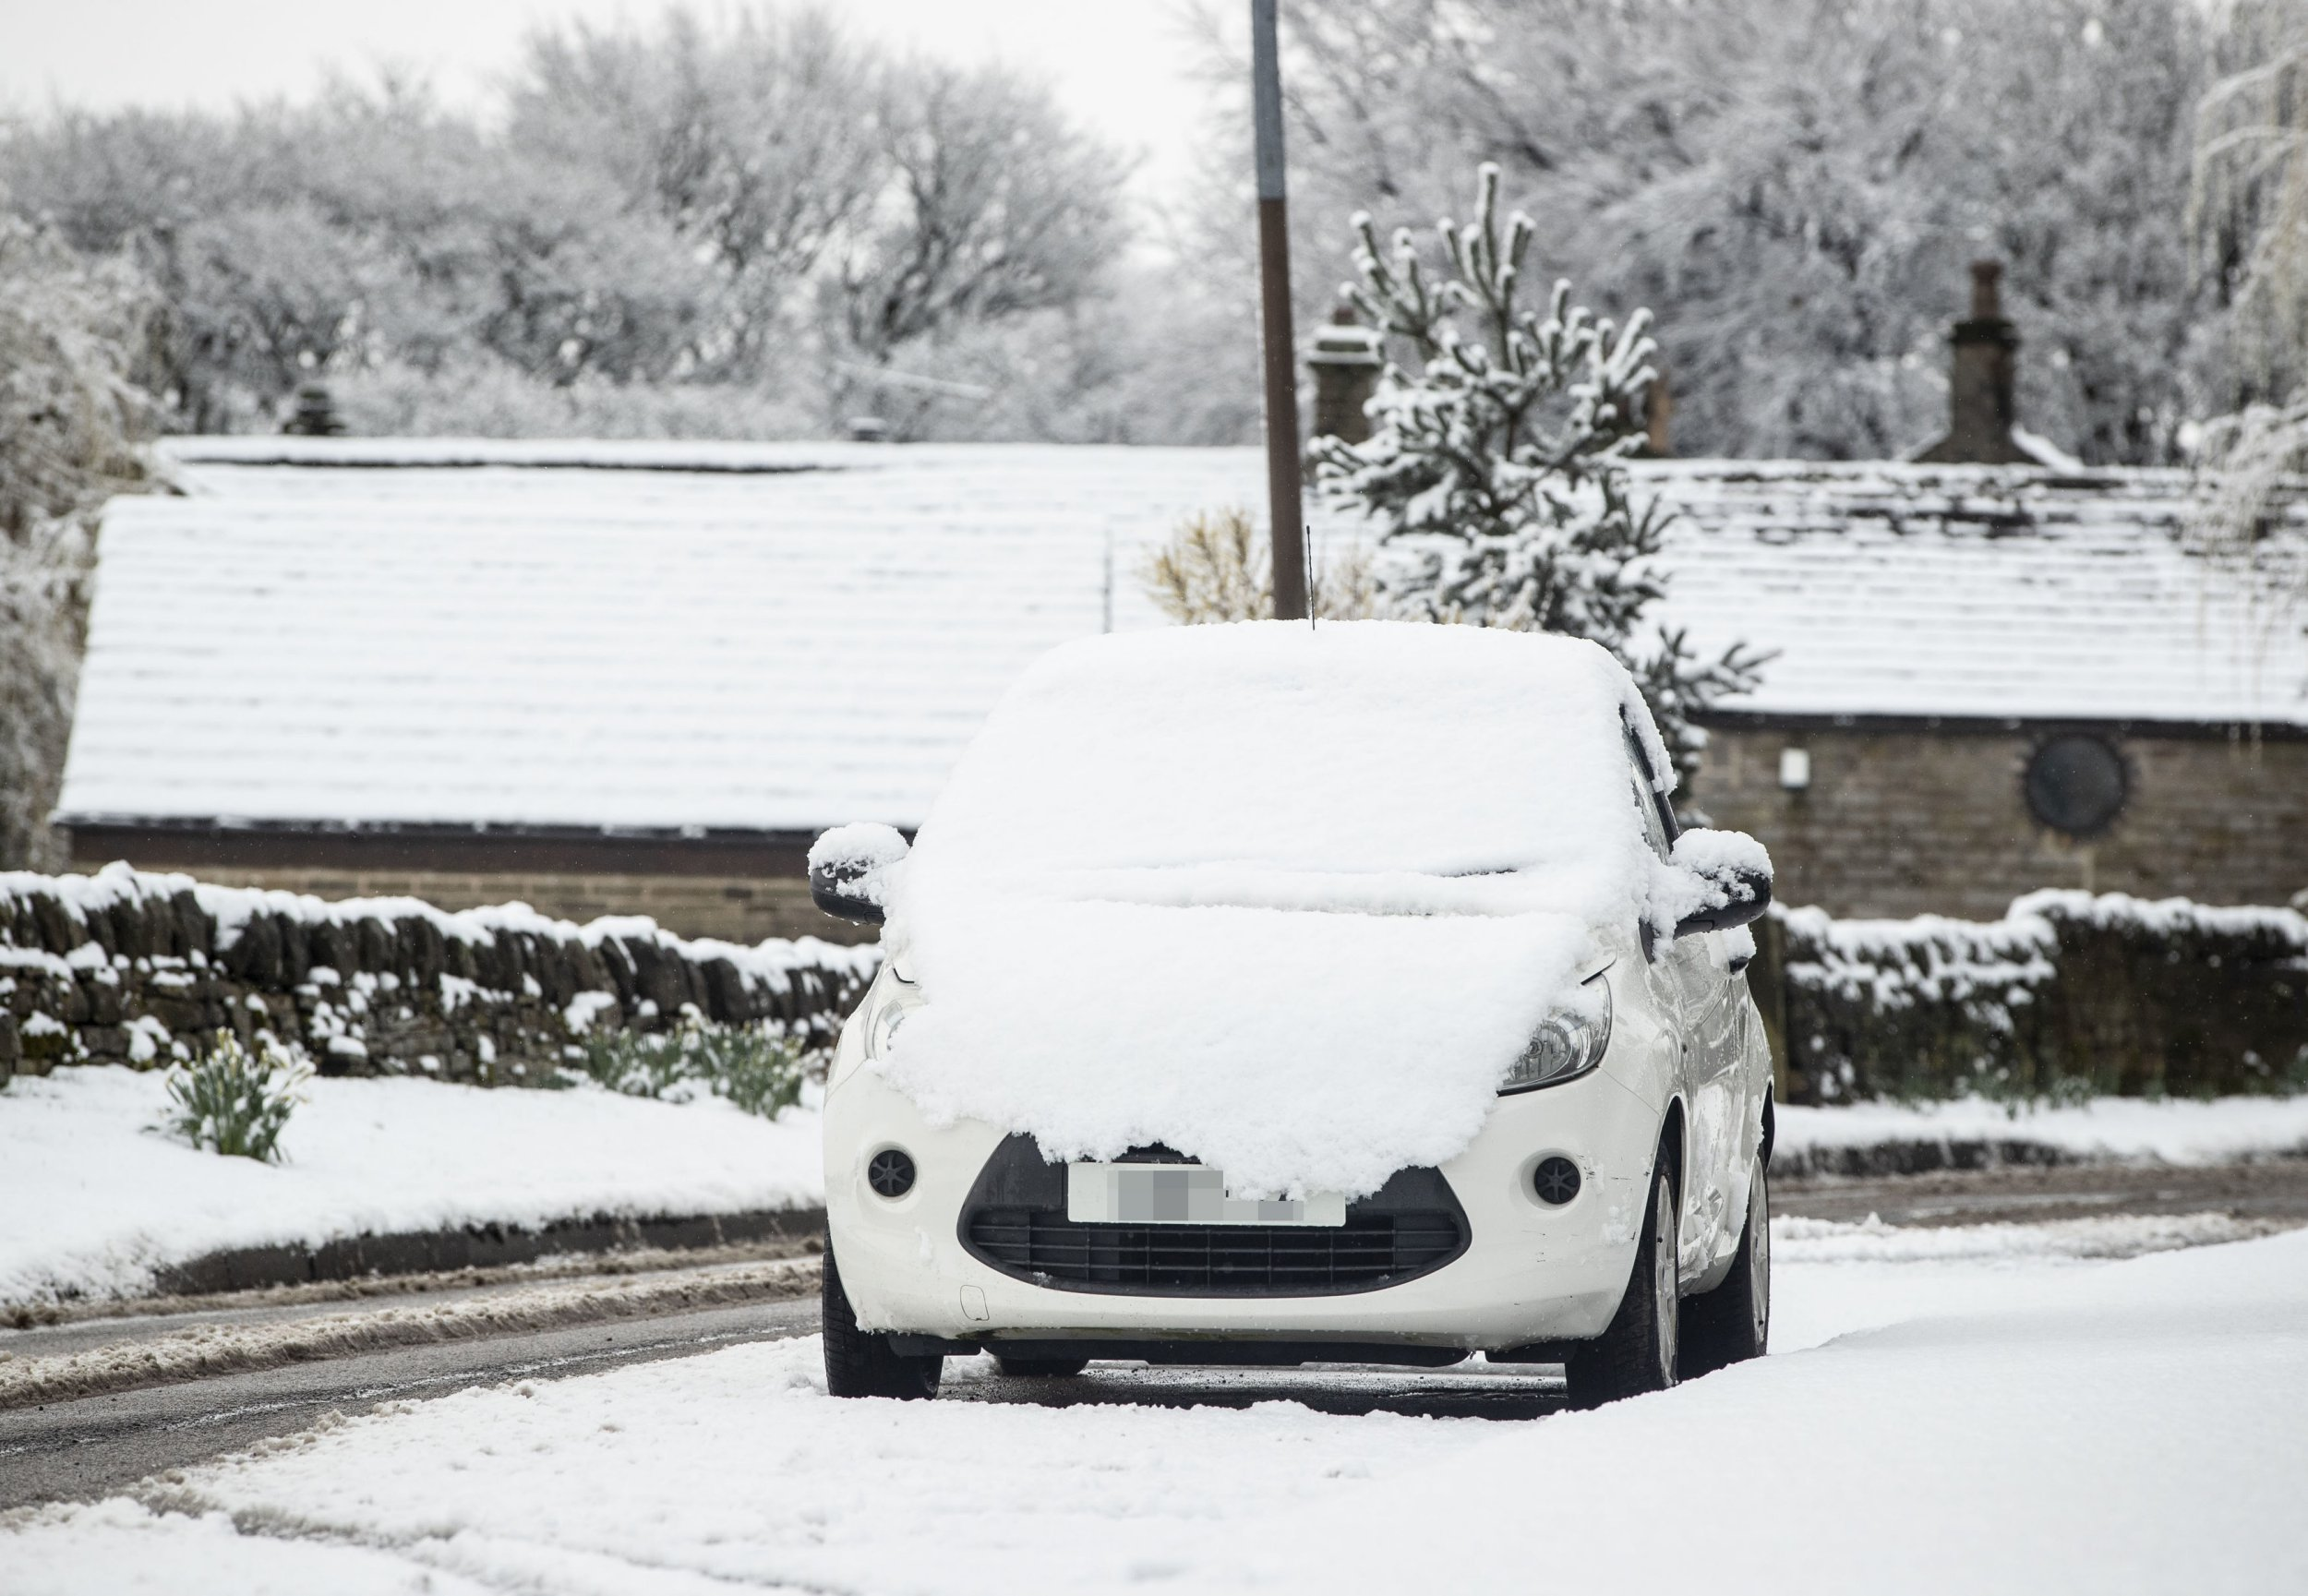 Snowy condition near Carlecotes in Yorkshire, as weather warnings are in place across the UK. PRESS ASSOCIATION Photo. Picture date: Sunday March 10, 2019. Weather warnings for snow and ice are in place across western Scotland and northern Ireland until 11am, while the wintry weather is also set to cause disruption across parts of the Midlands. Photo credit should read: Danny Lawson/PA Wire